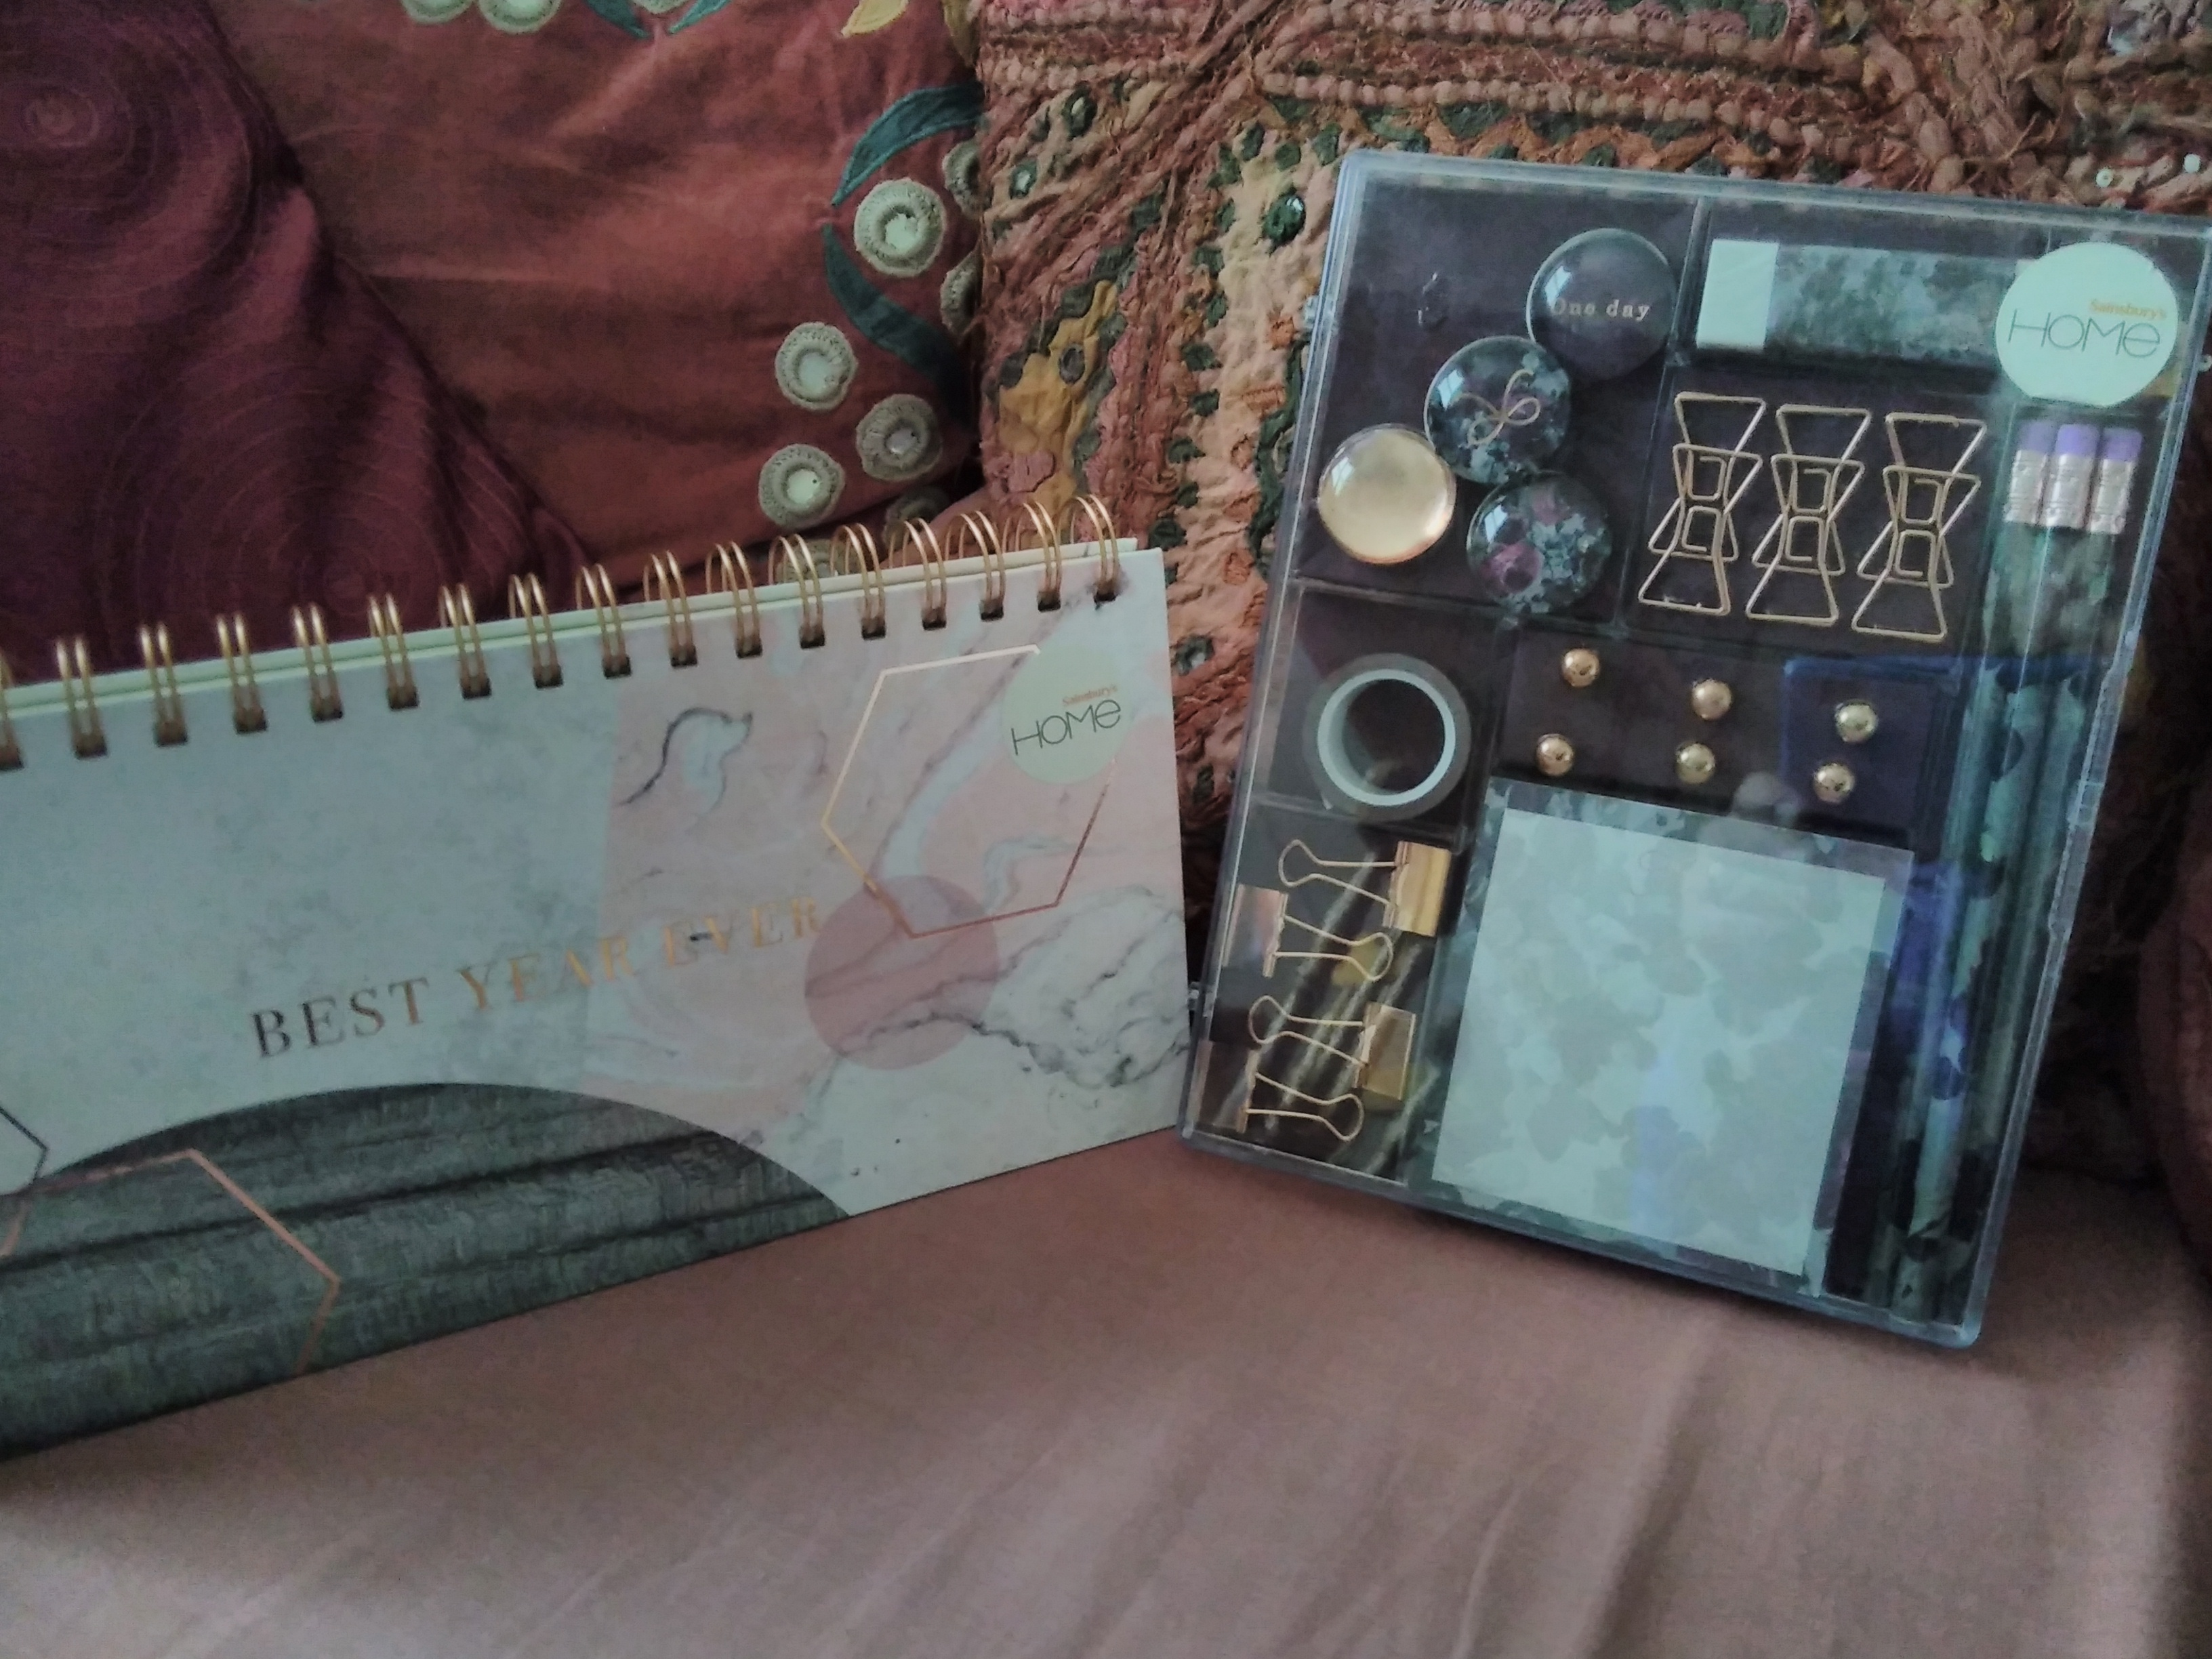 Year planner and desk set